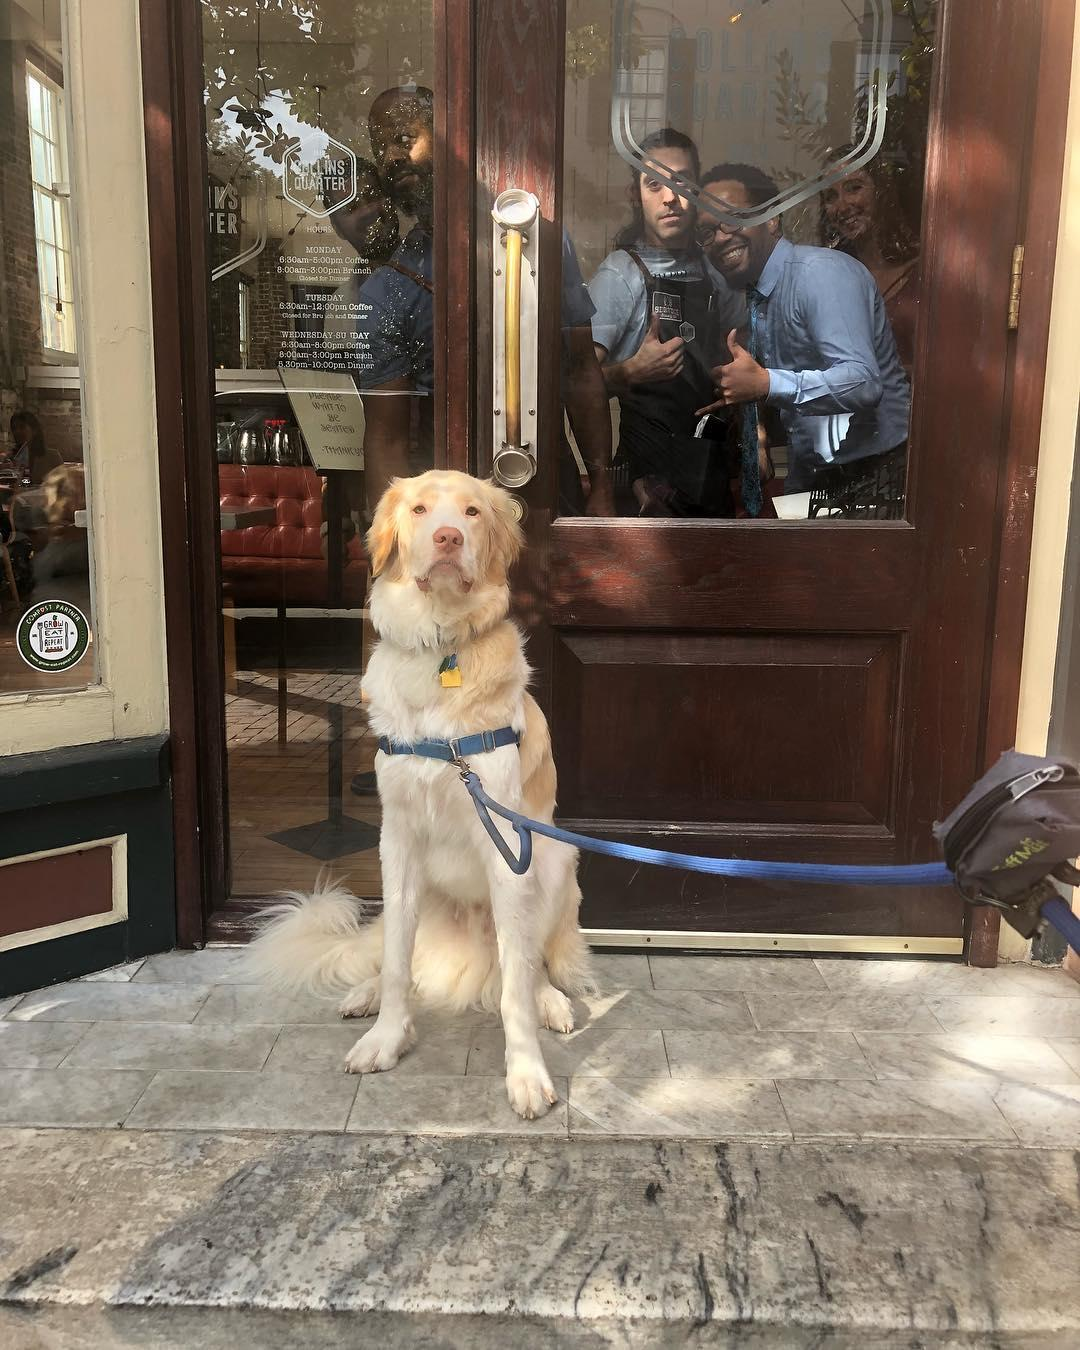 A dog stands at the door of Collins Quarter, a coffee shop in dog-friendly Savannah.